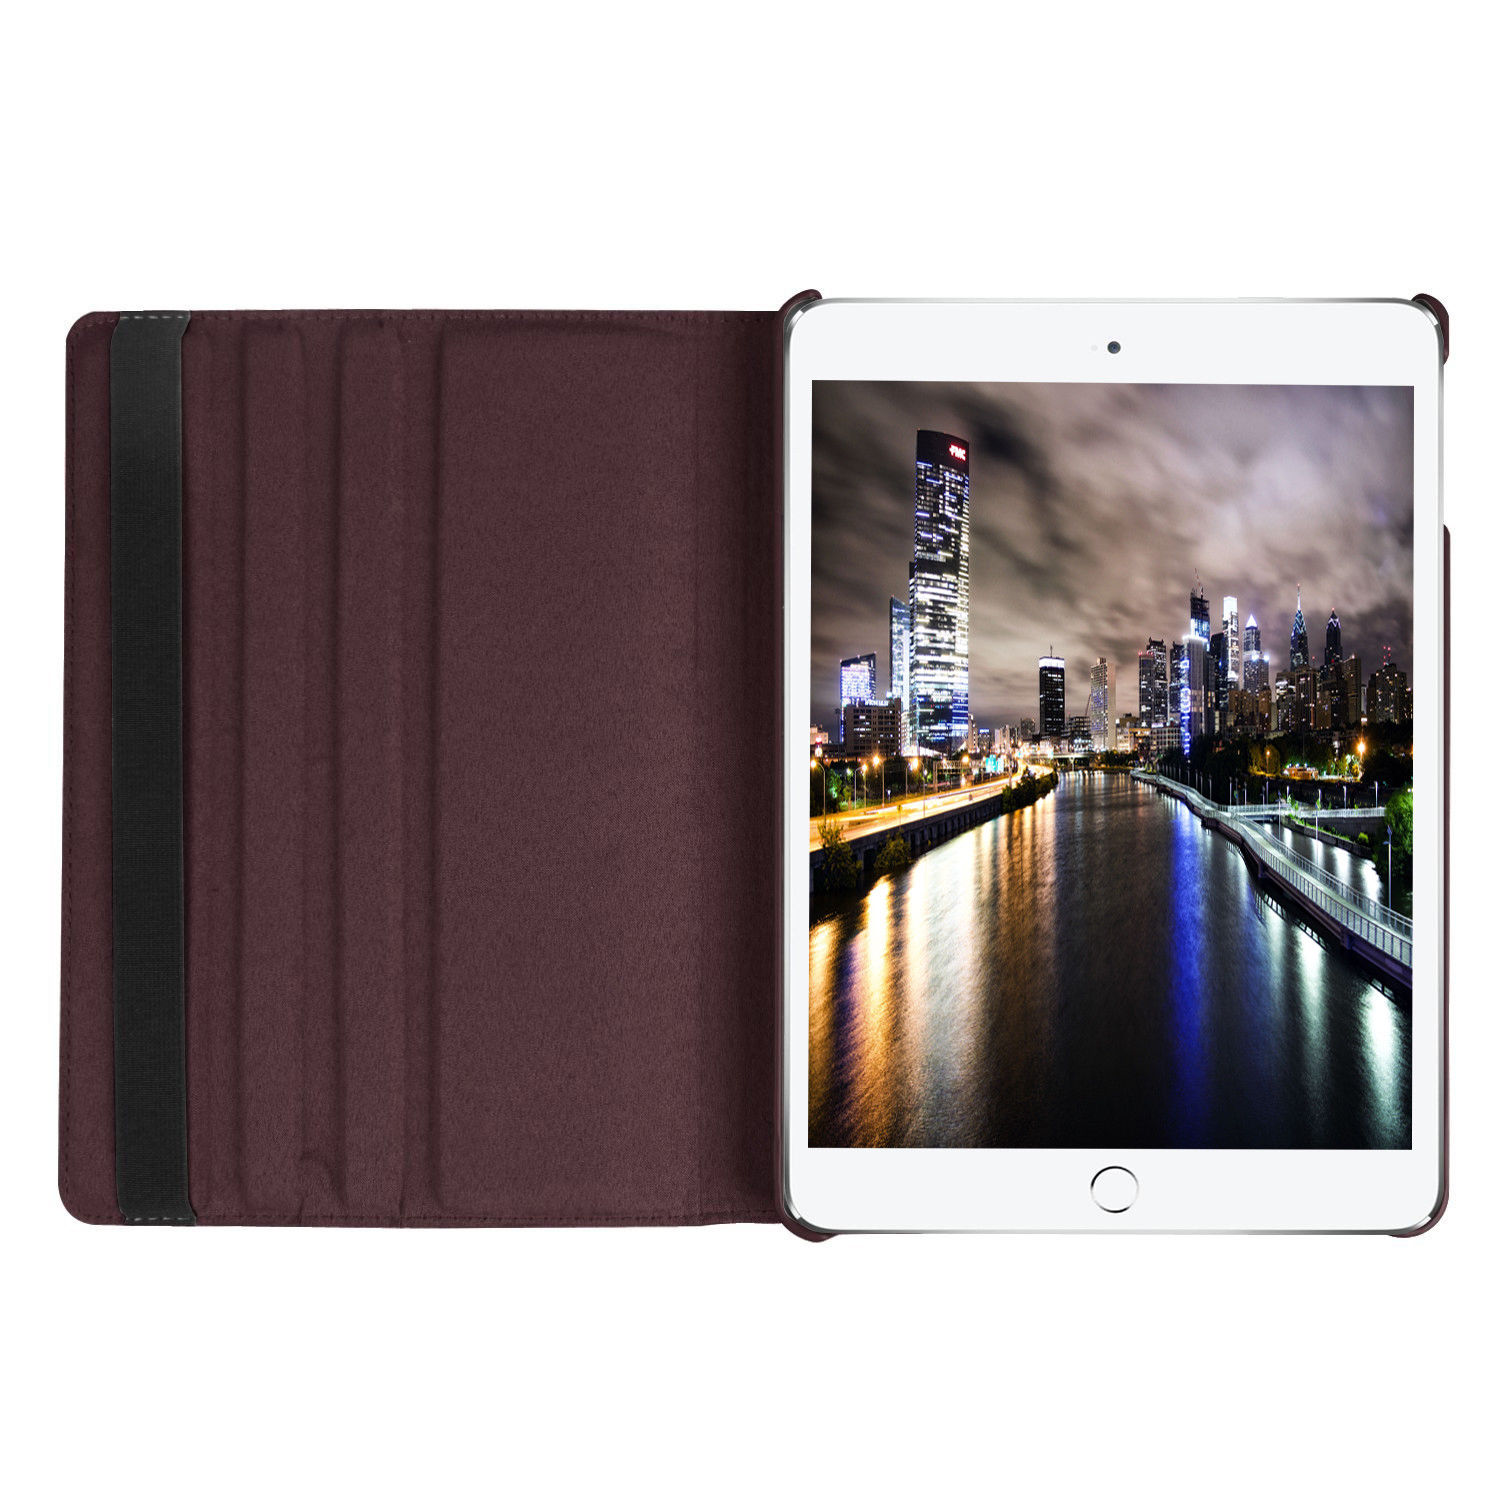 Custodia-per-Apple-iPad-Pro-2017-iPad-Air-3-10-5-Smart-Cover-Case-Custodia-Protettiva miniatura 64